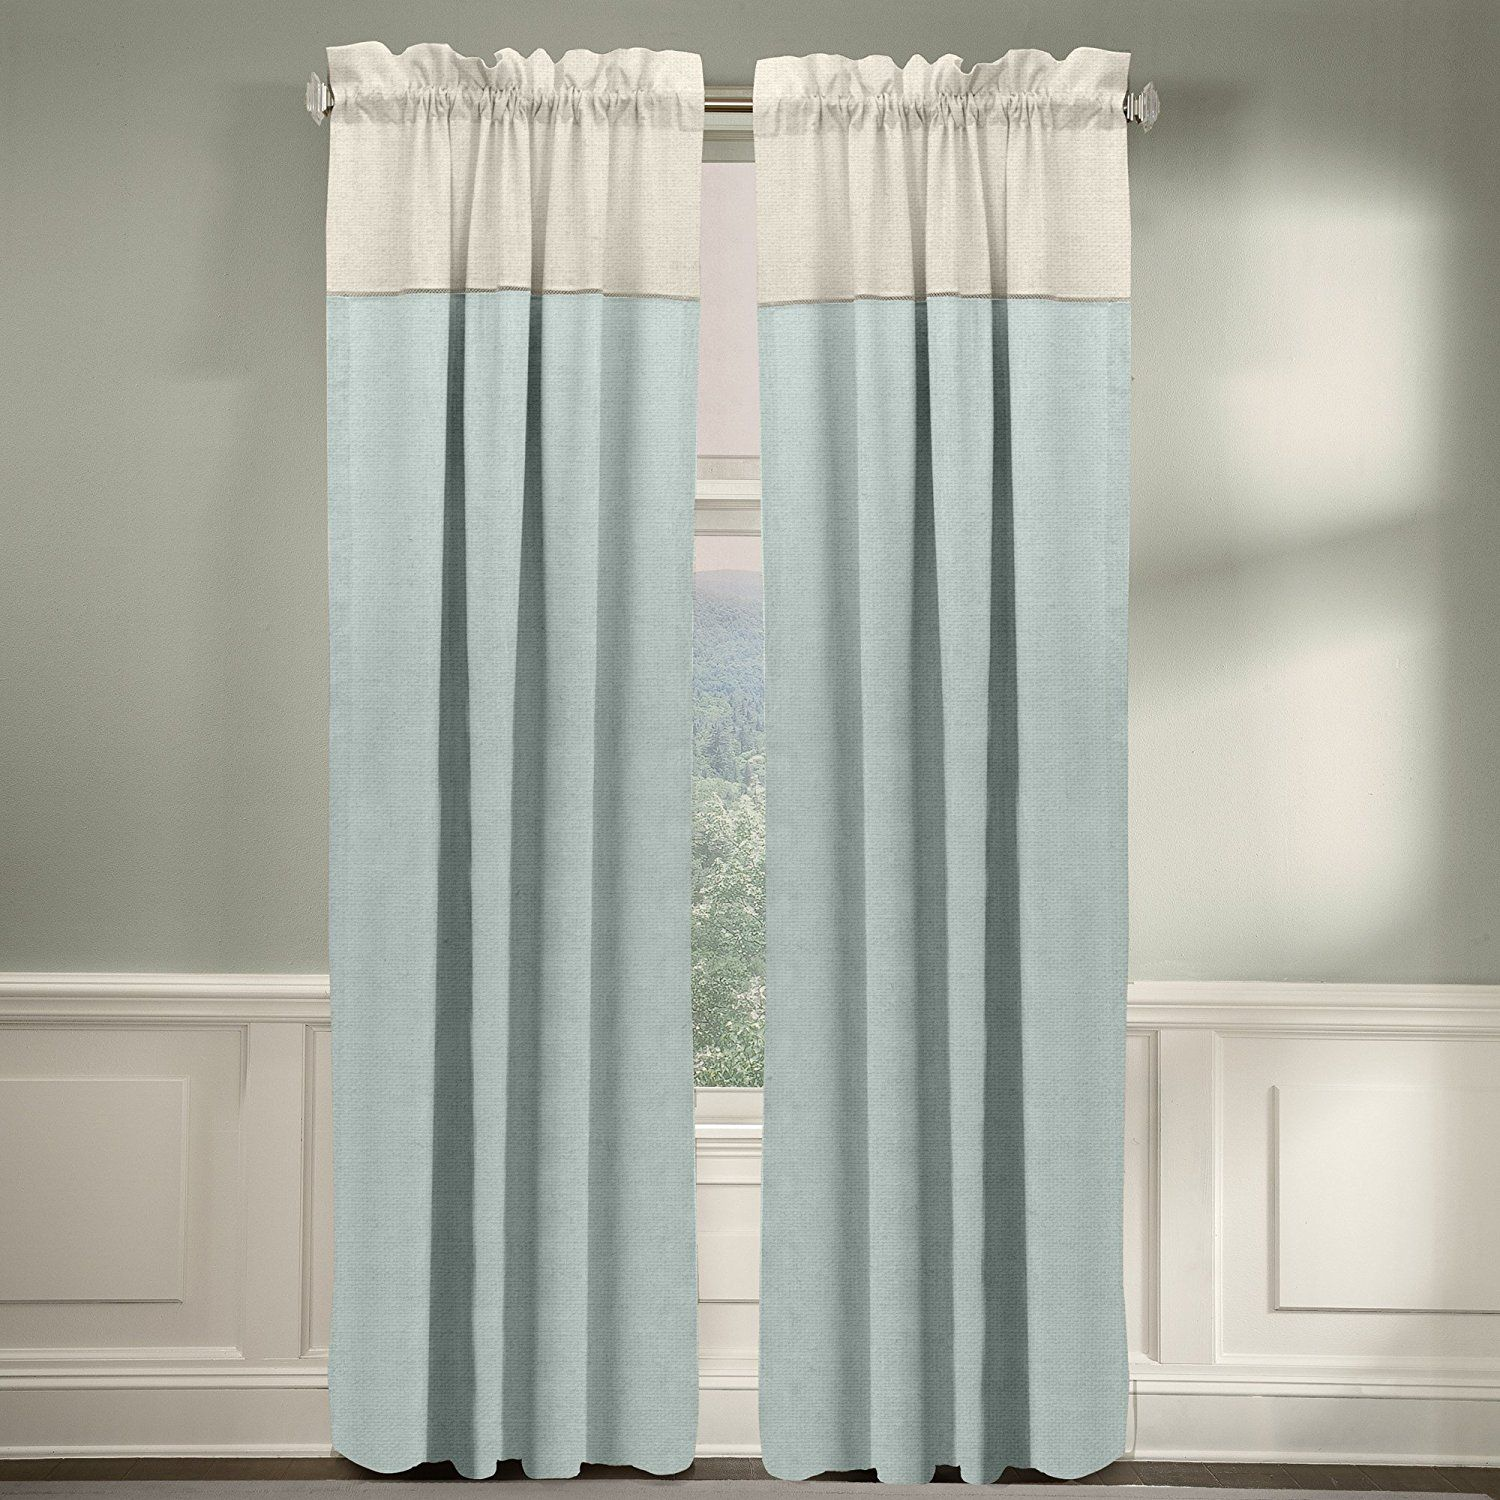 Veratex The Monterey Window Collection Made In The U S A 100 Linen Living Room Rod Pocket Window Panel Curtain Panel Curtains Curtains Contemporary Curtains